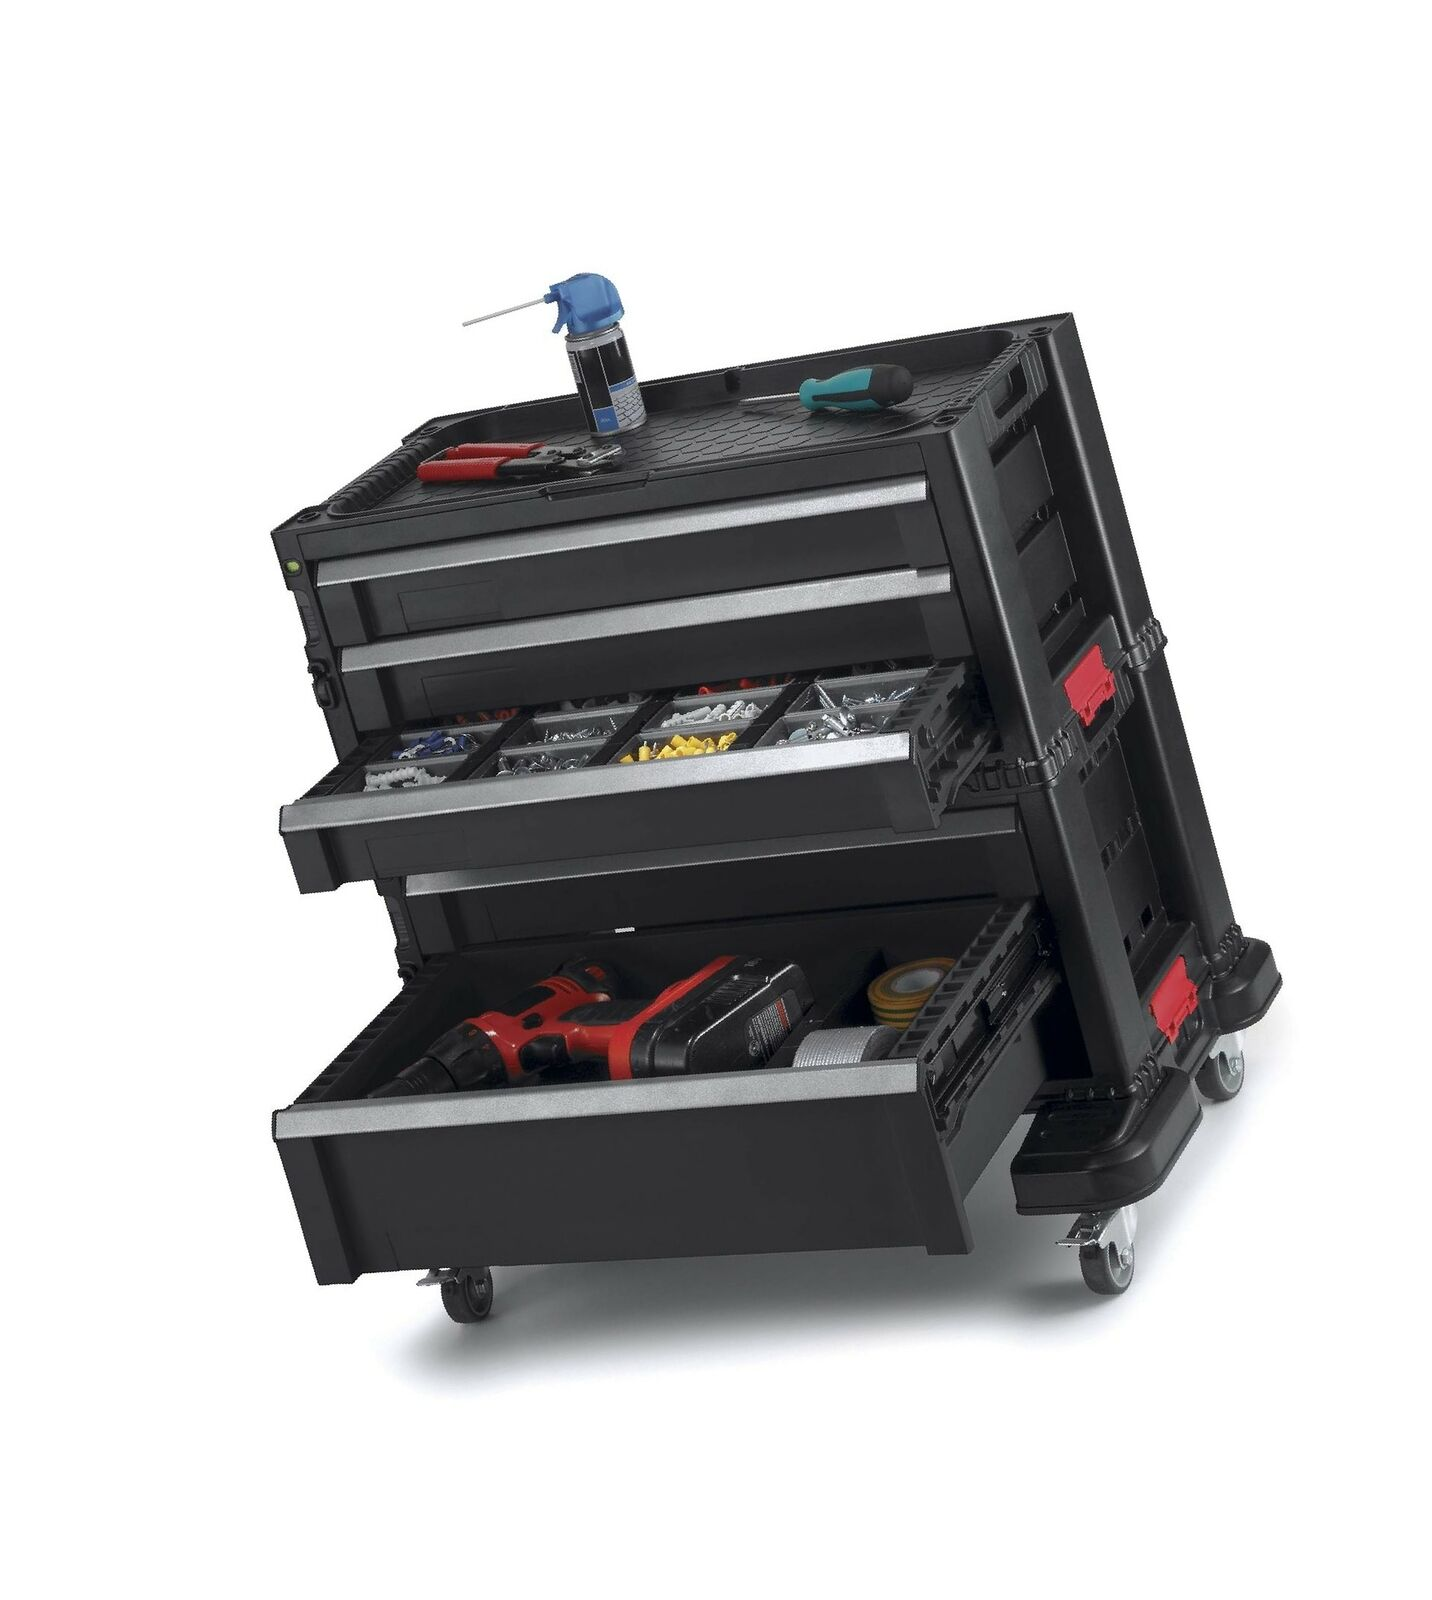 Keter Rolling Tool Chest with Storage Drawers, Locking System and 16 Removabl...